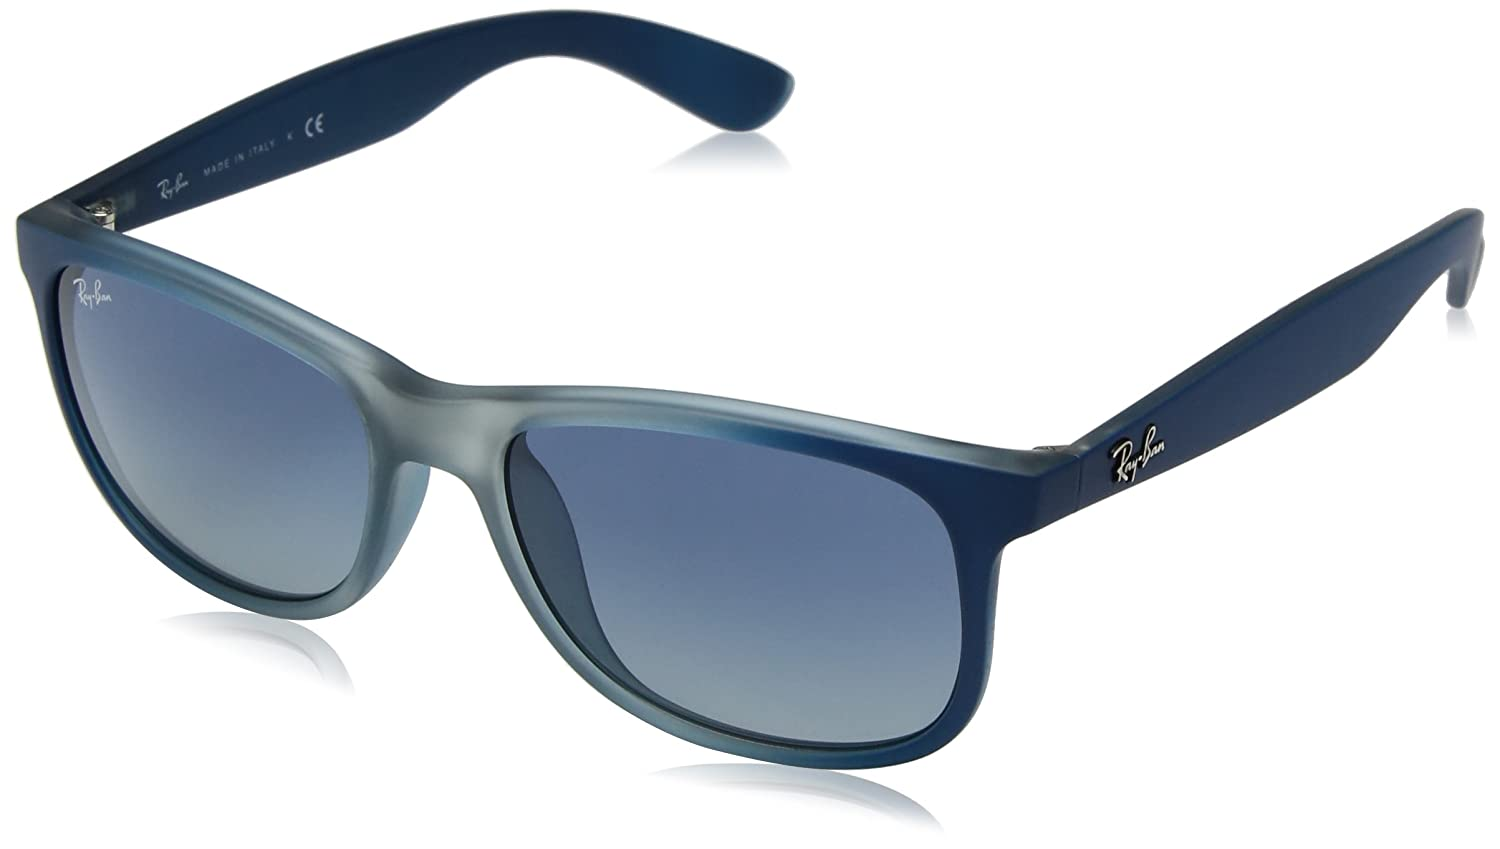 2935f625f Amazon.com: Ray-Ban Men's Andy Rectangular Sunglasses, GRADIENT  BLUE/RUBBER, 55.1 mm: Clothing